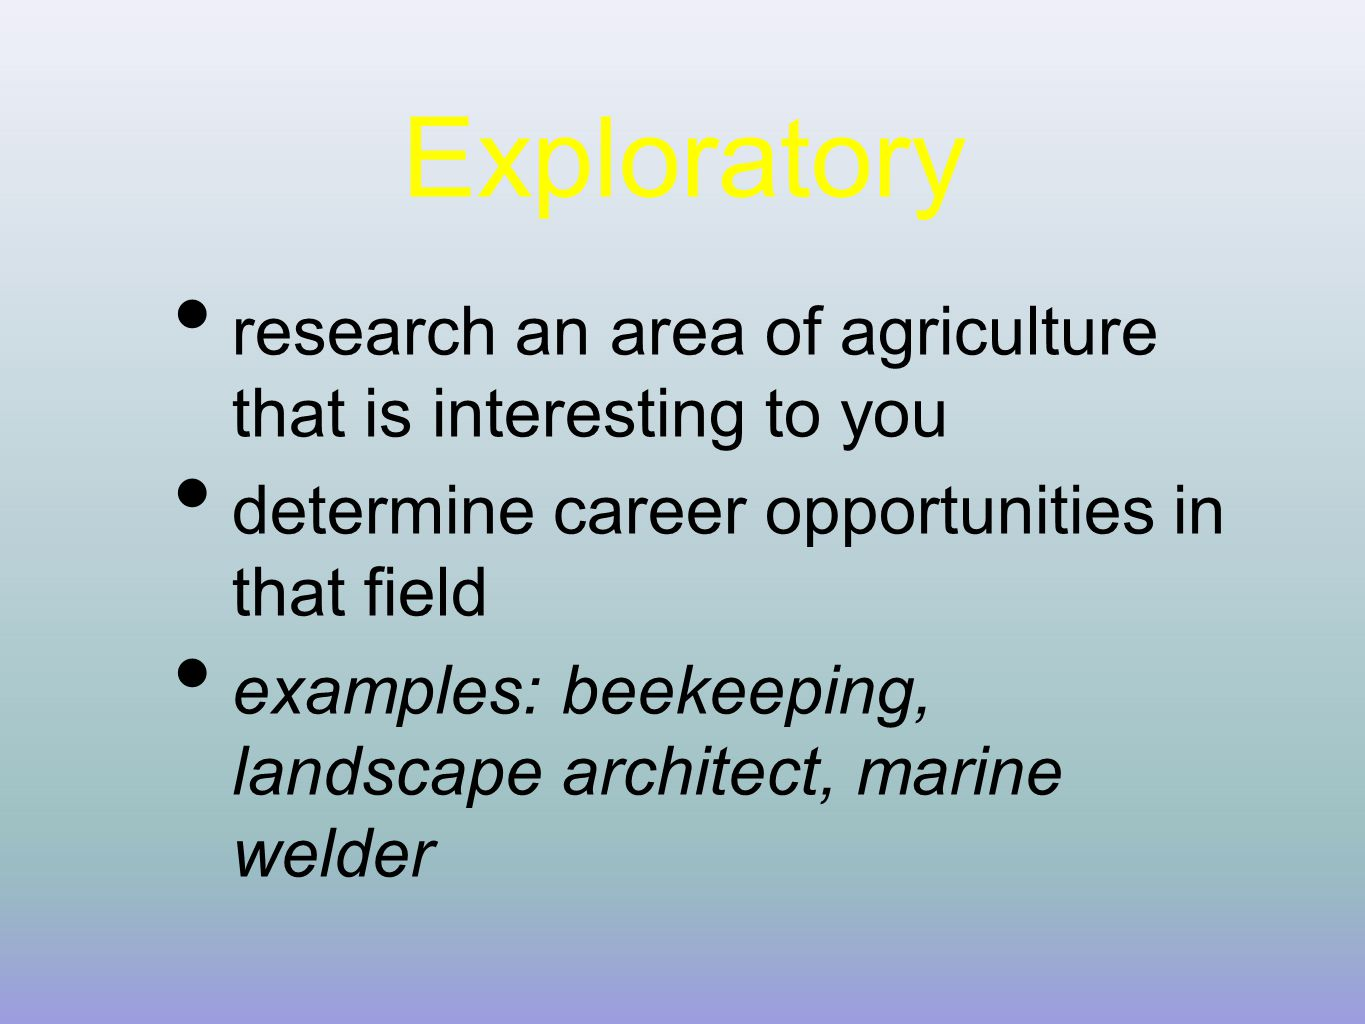 Exploratory research an area of agriculture that is interesting to you determine career opportunities in that field examples: beekeeping, landscape architect, marine welder